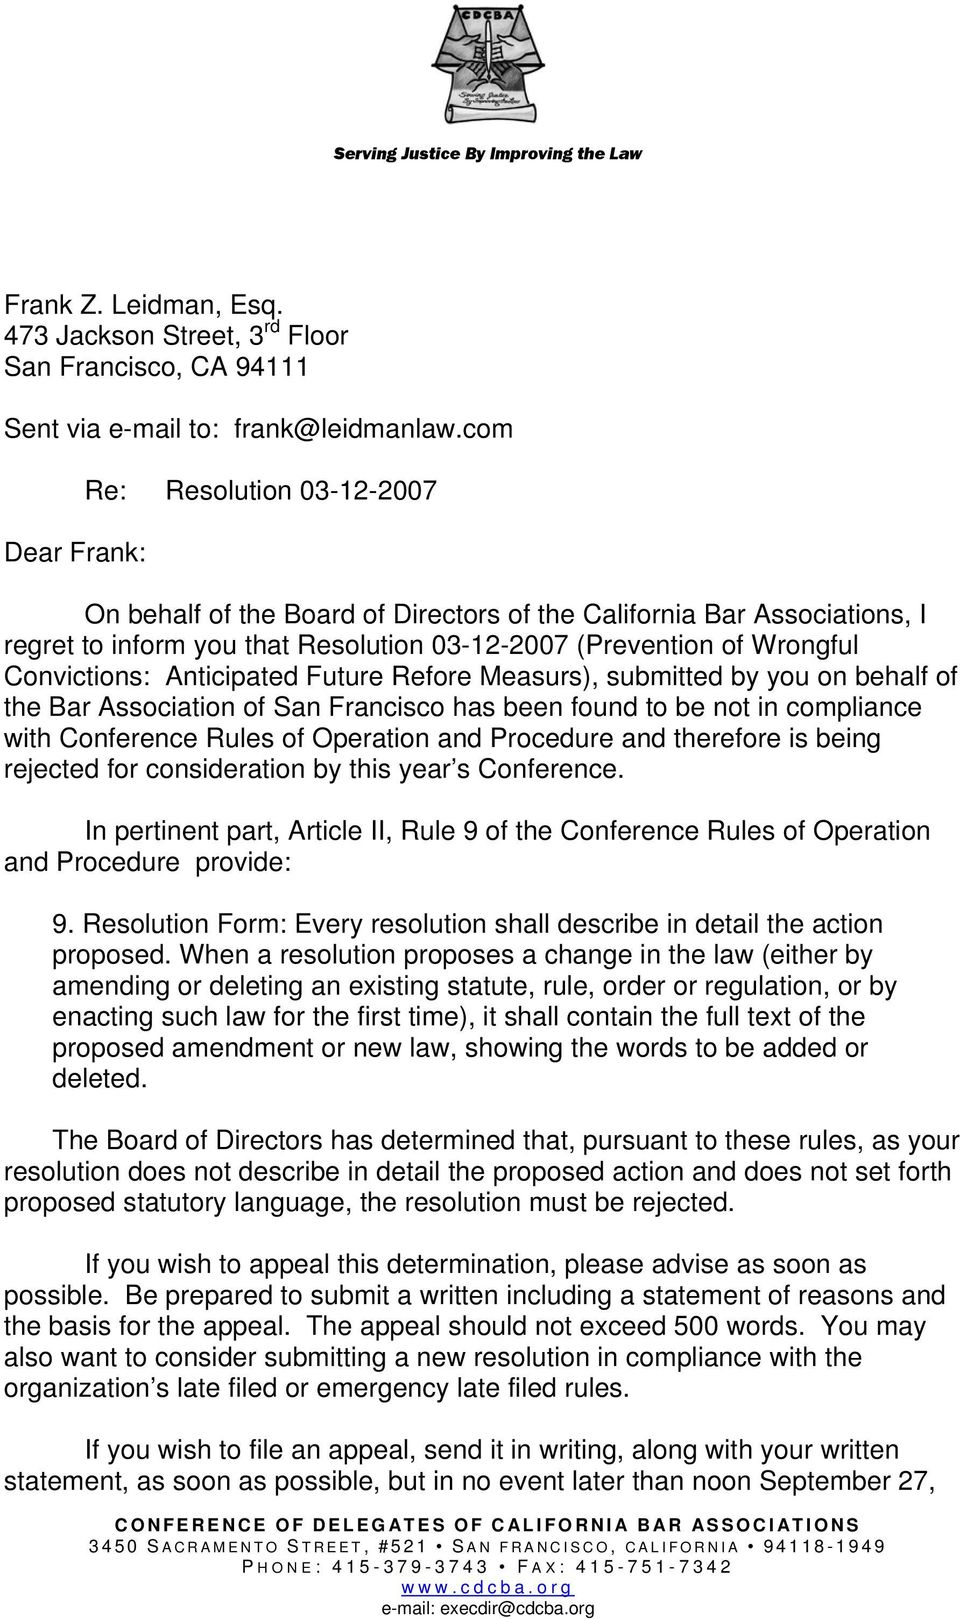 Convictions: Anticipated Future Refore Measurs), submitted by you on behalf of the Bar Association of San Francisco has been found to be not in compliance with Conference Rules of Operation and